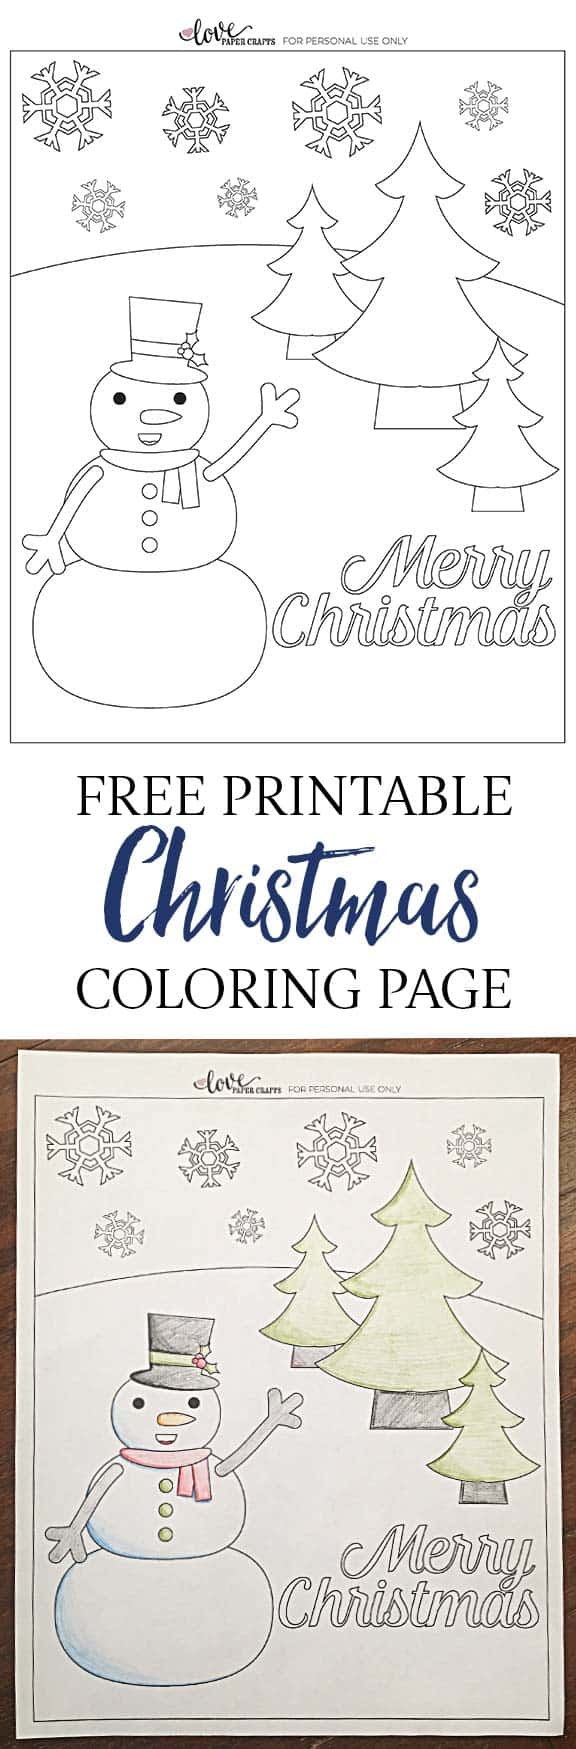 Free Printable Christmas Snowman coloring Page for the Kids | LovePaperCrafts.com